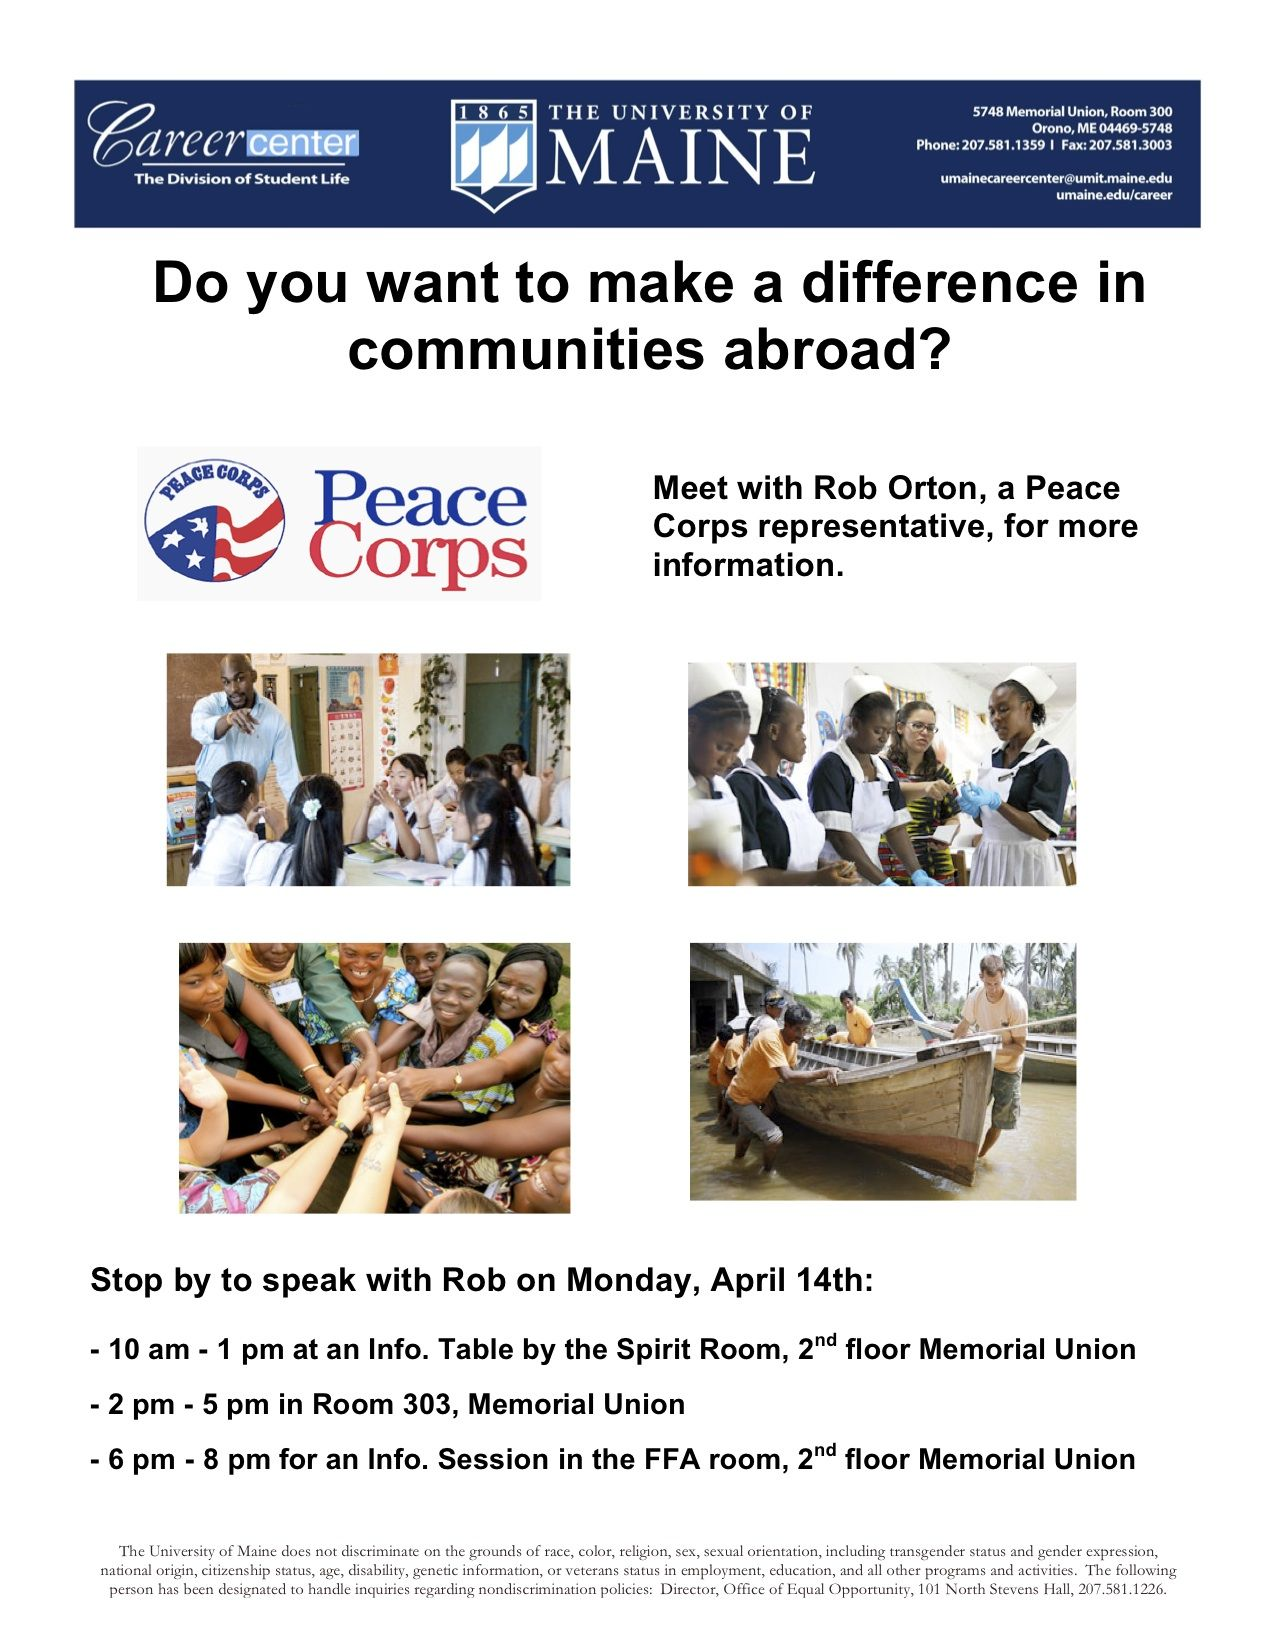 Peace corps on campus april 14th info sessions tabling